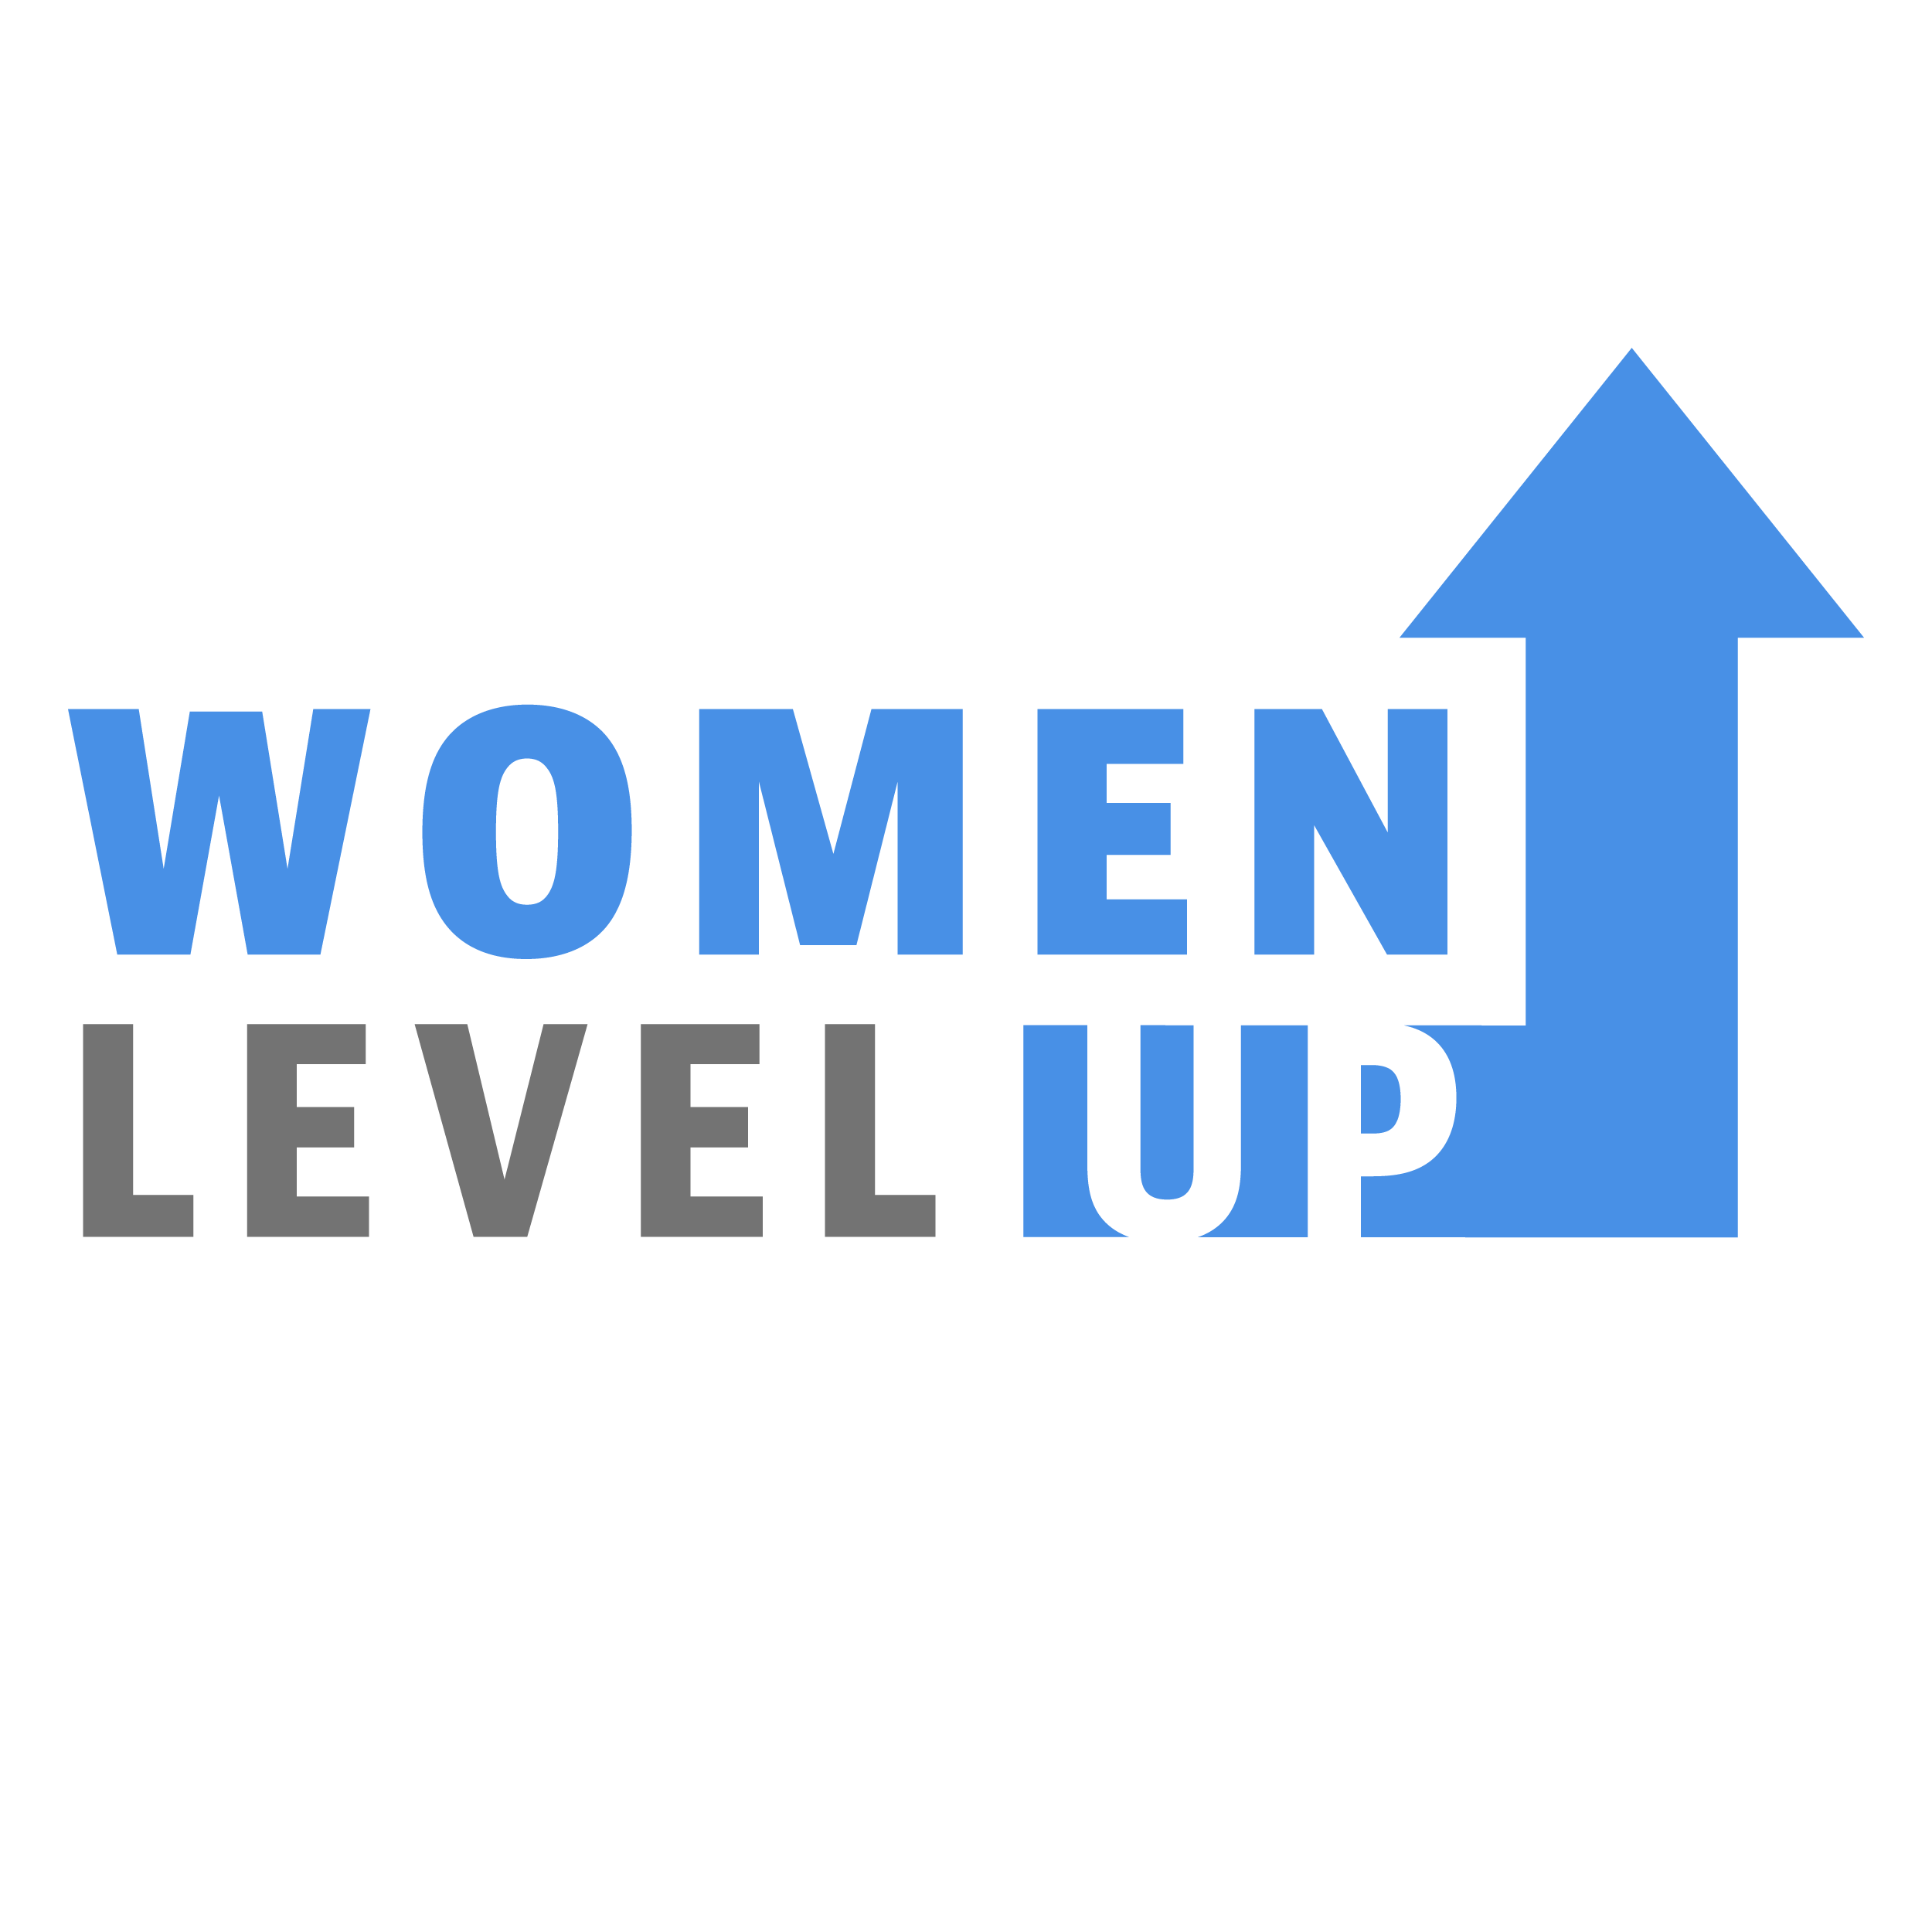 Women Level Up